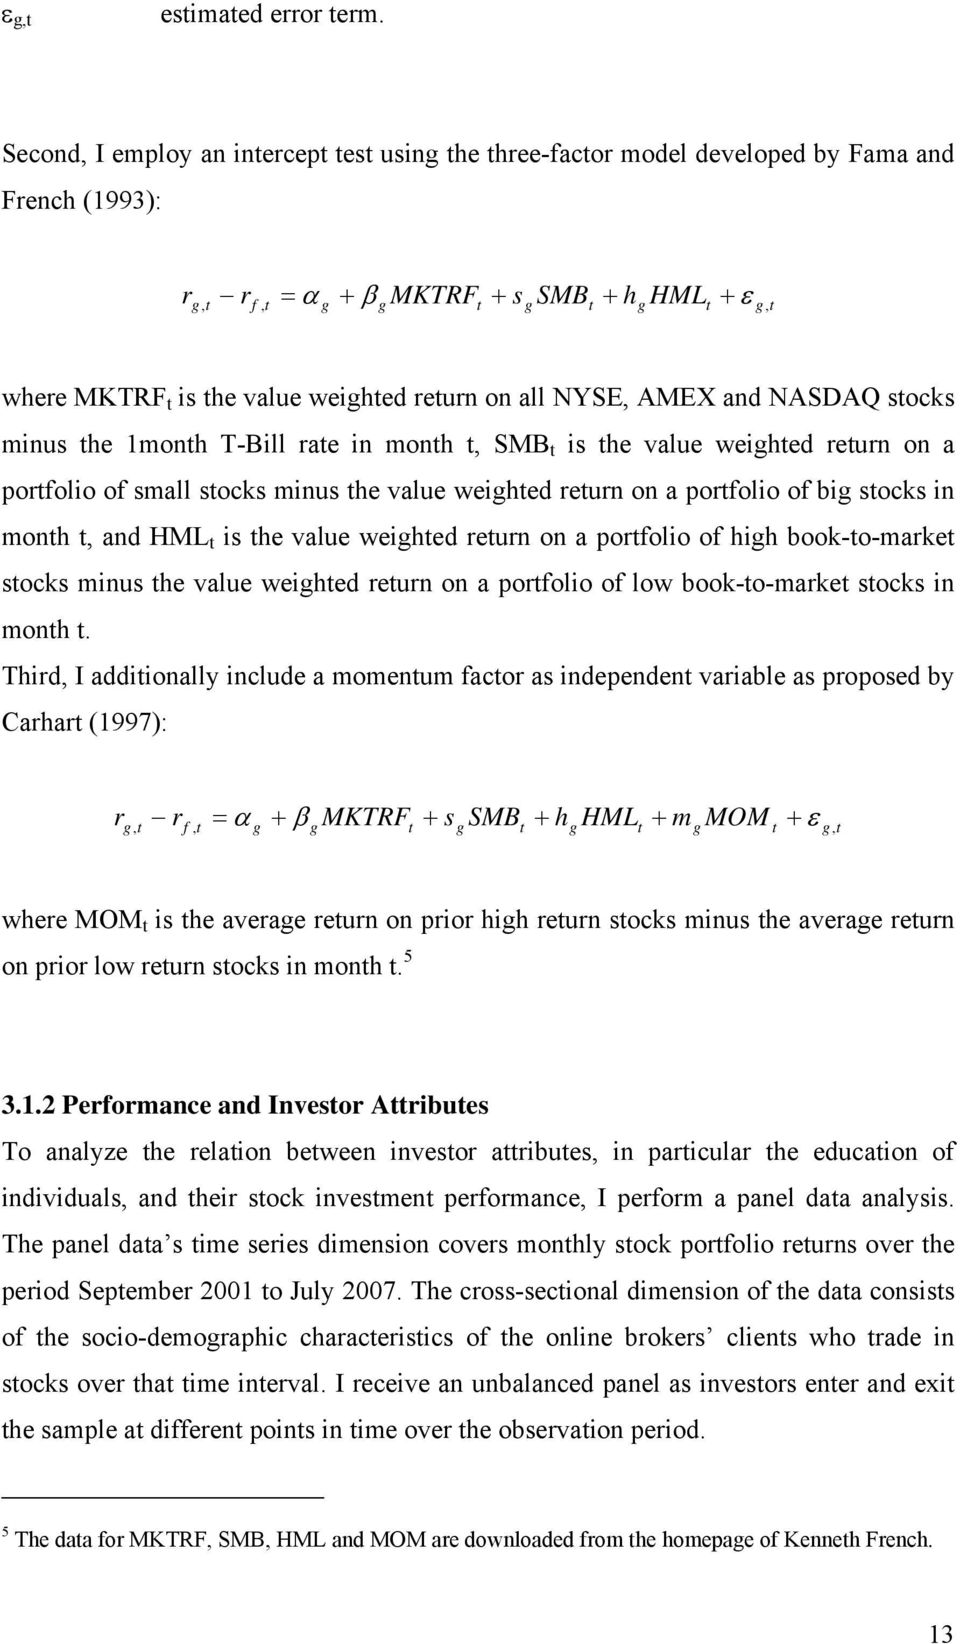 return on all NYSE, AMEX and NASDAQ stocks minus the 1month T-Bill rate in month t, SMB t is the value weighted return on a portfolio of small stocks minus the value weighted return on a portfolio of